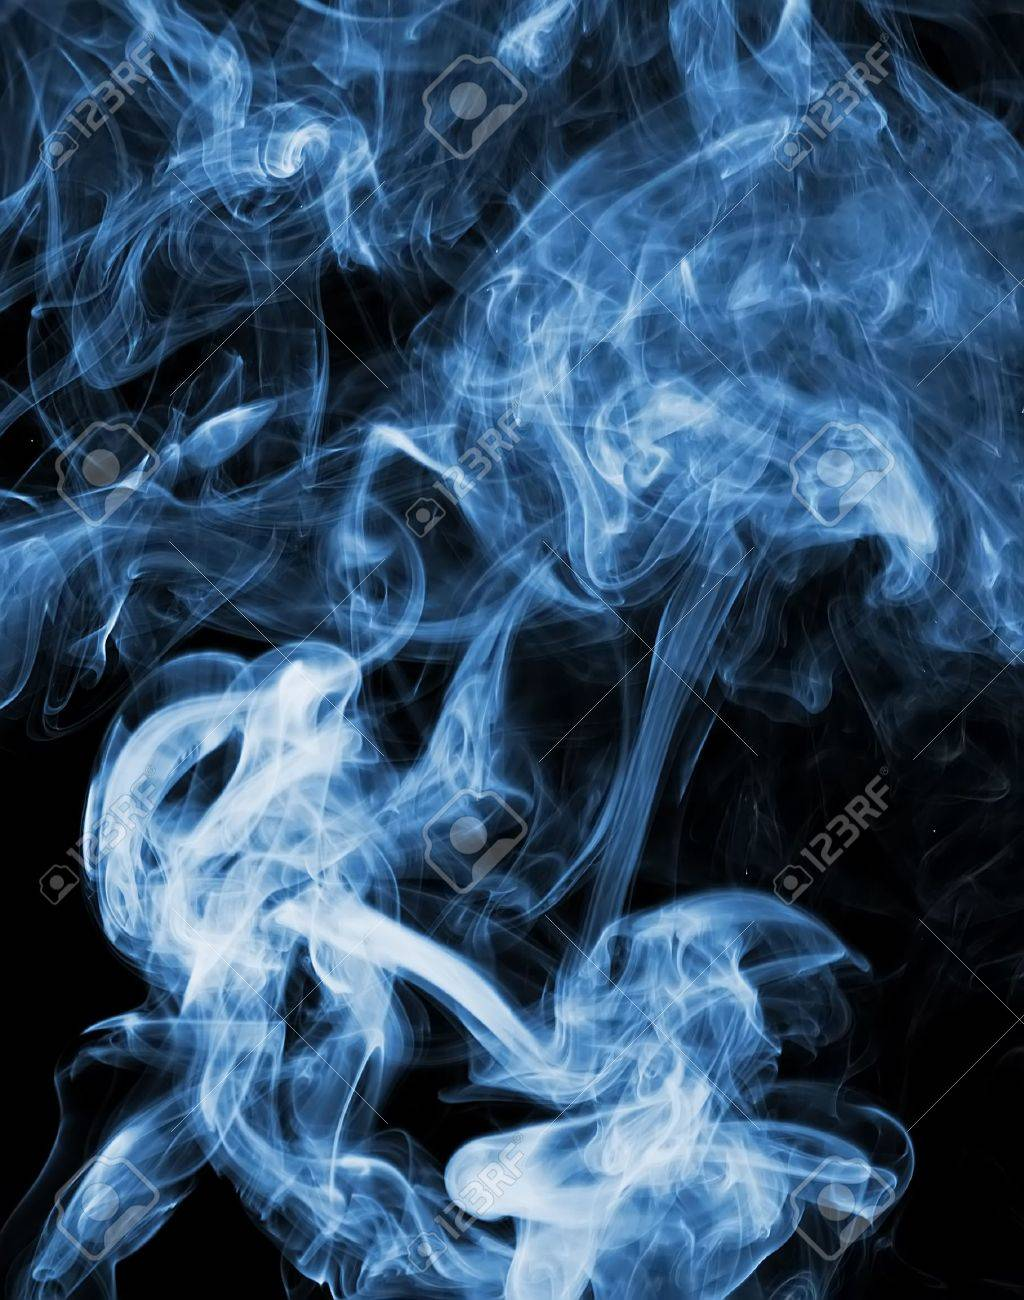 abstract smoke picture in front of a black background - 16800700